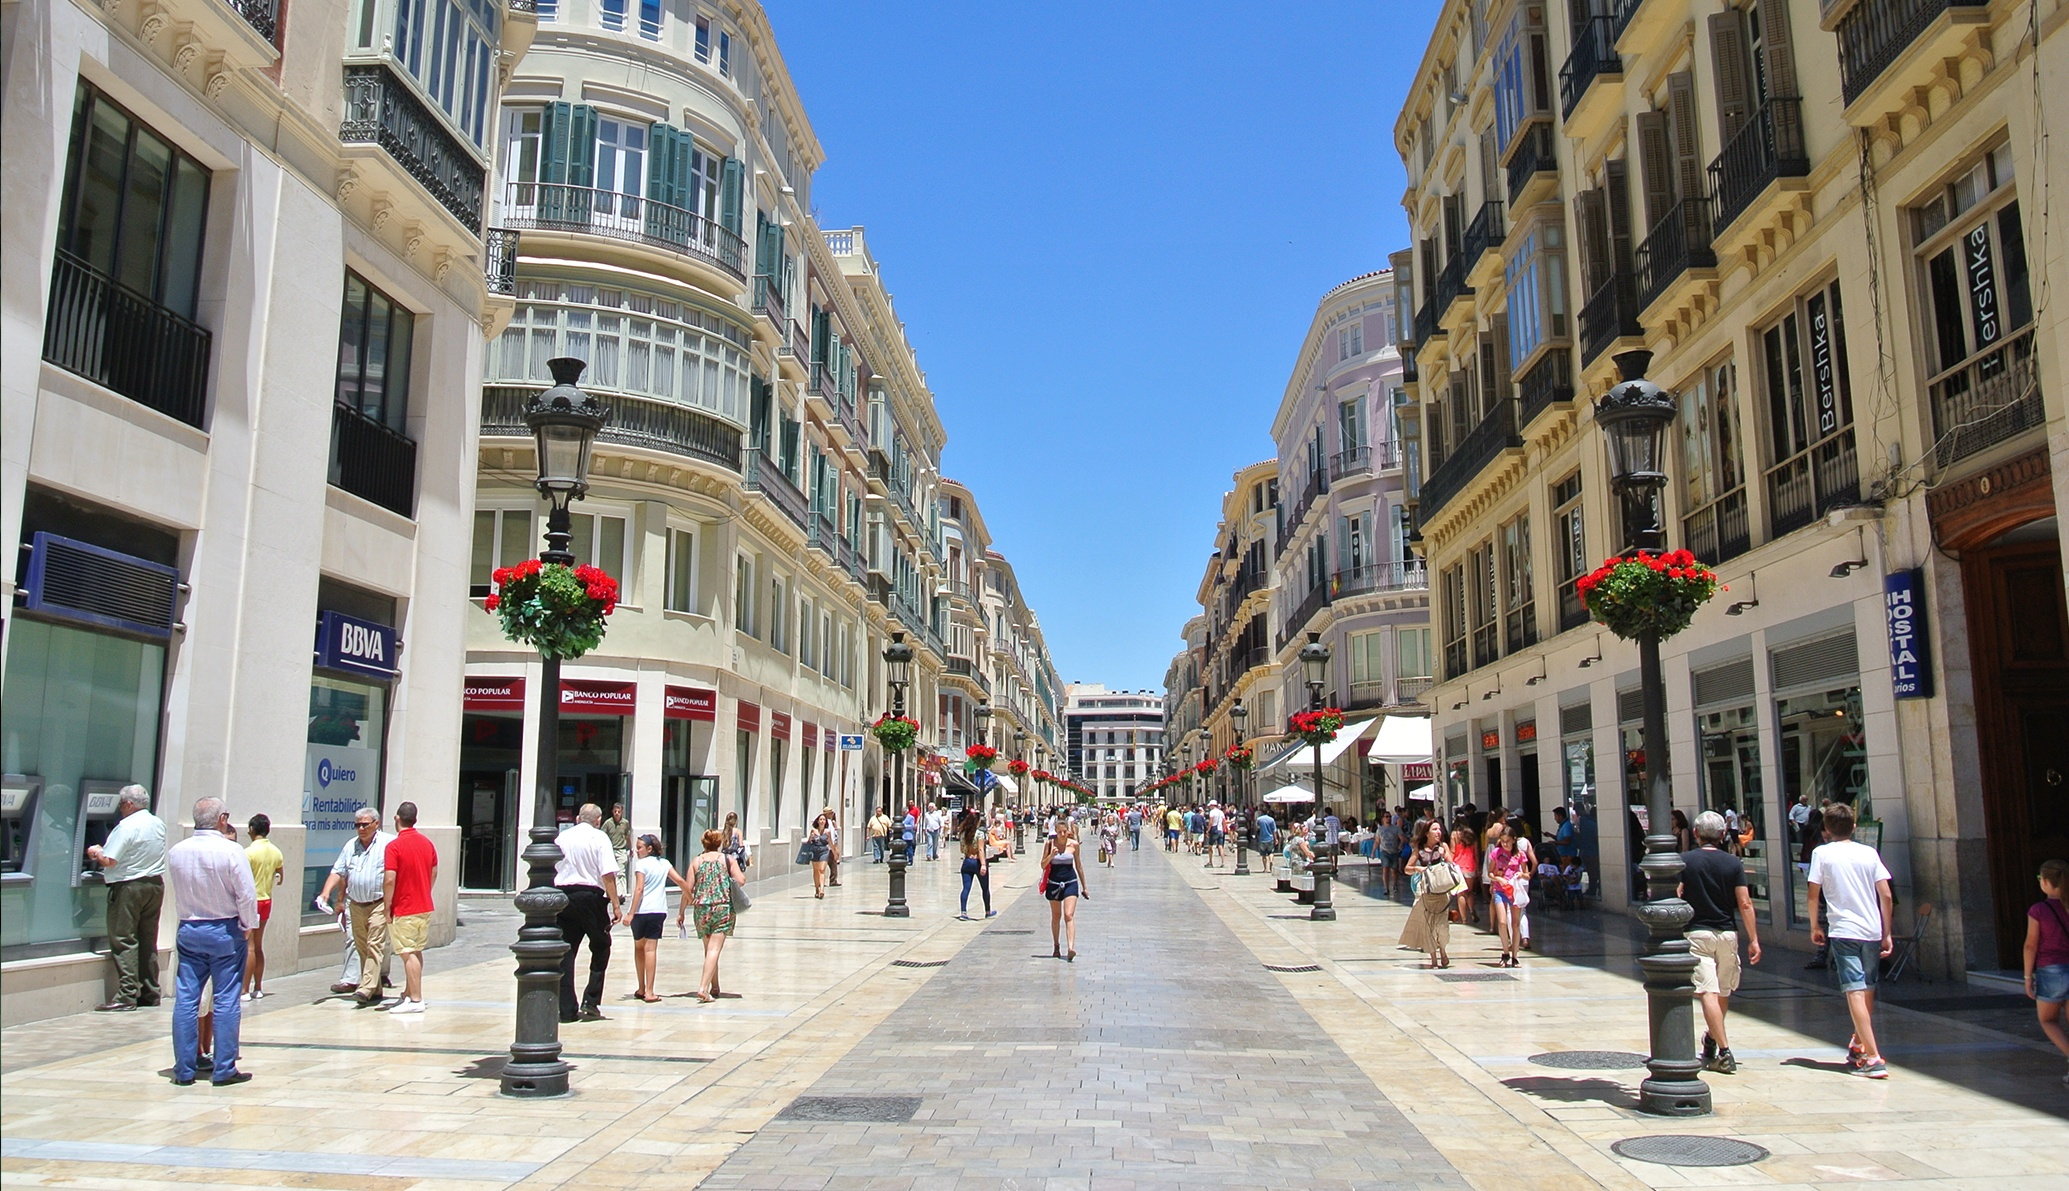 5 things you must do at Costa del Sol if you come to learn Spanish